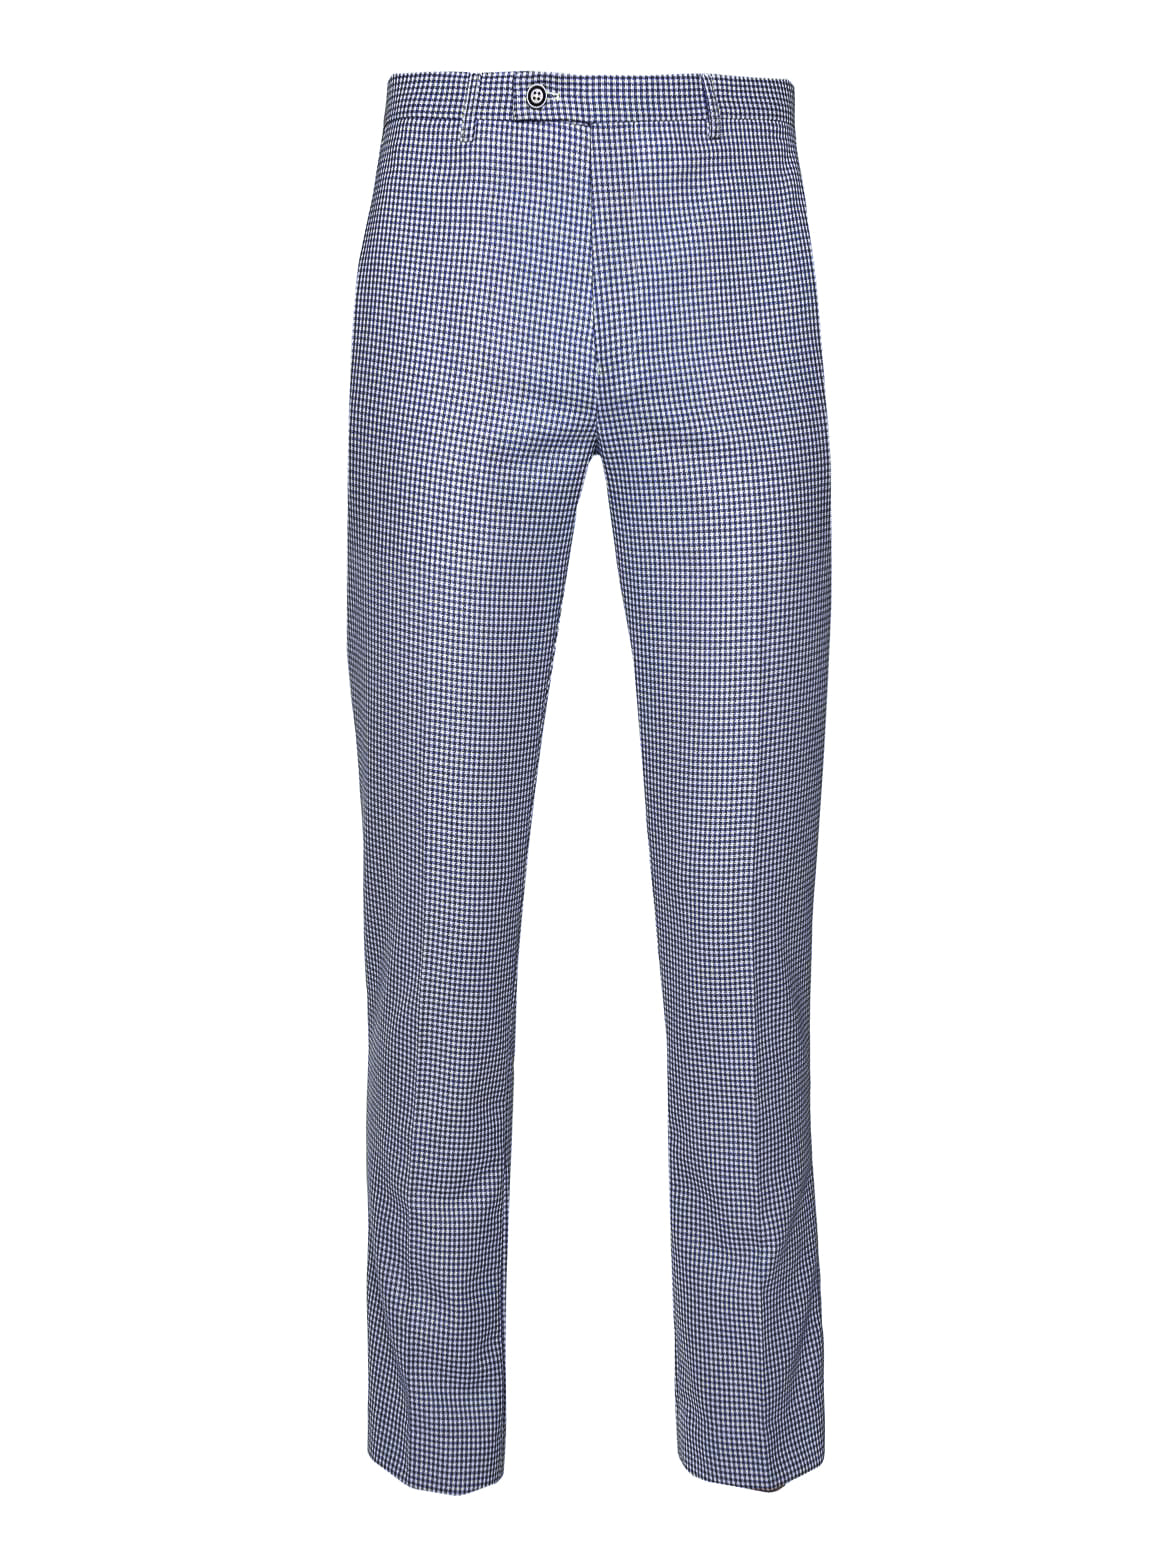 Downing Pants  - Blue White Double Basket Weave